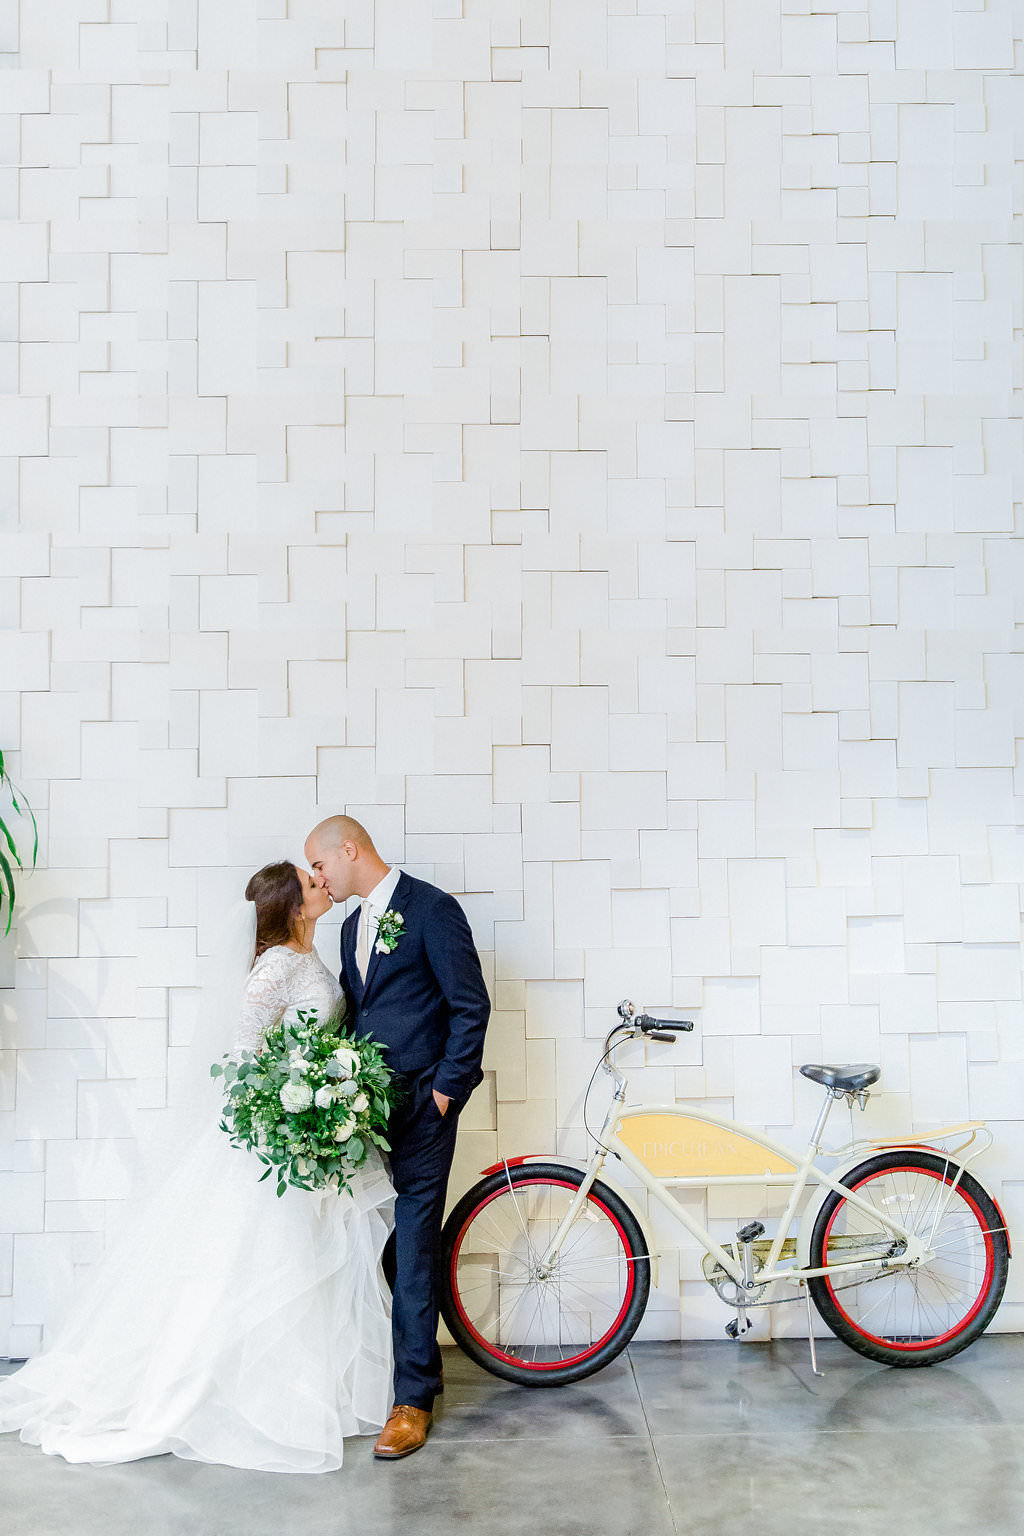 Tampa Bay Bride and Groom Wedding Portrait with Bicycle | South Tampa Boutique Wedding Venue the Epicurean Hotel